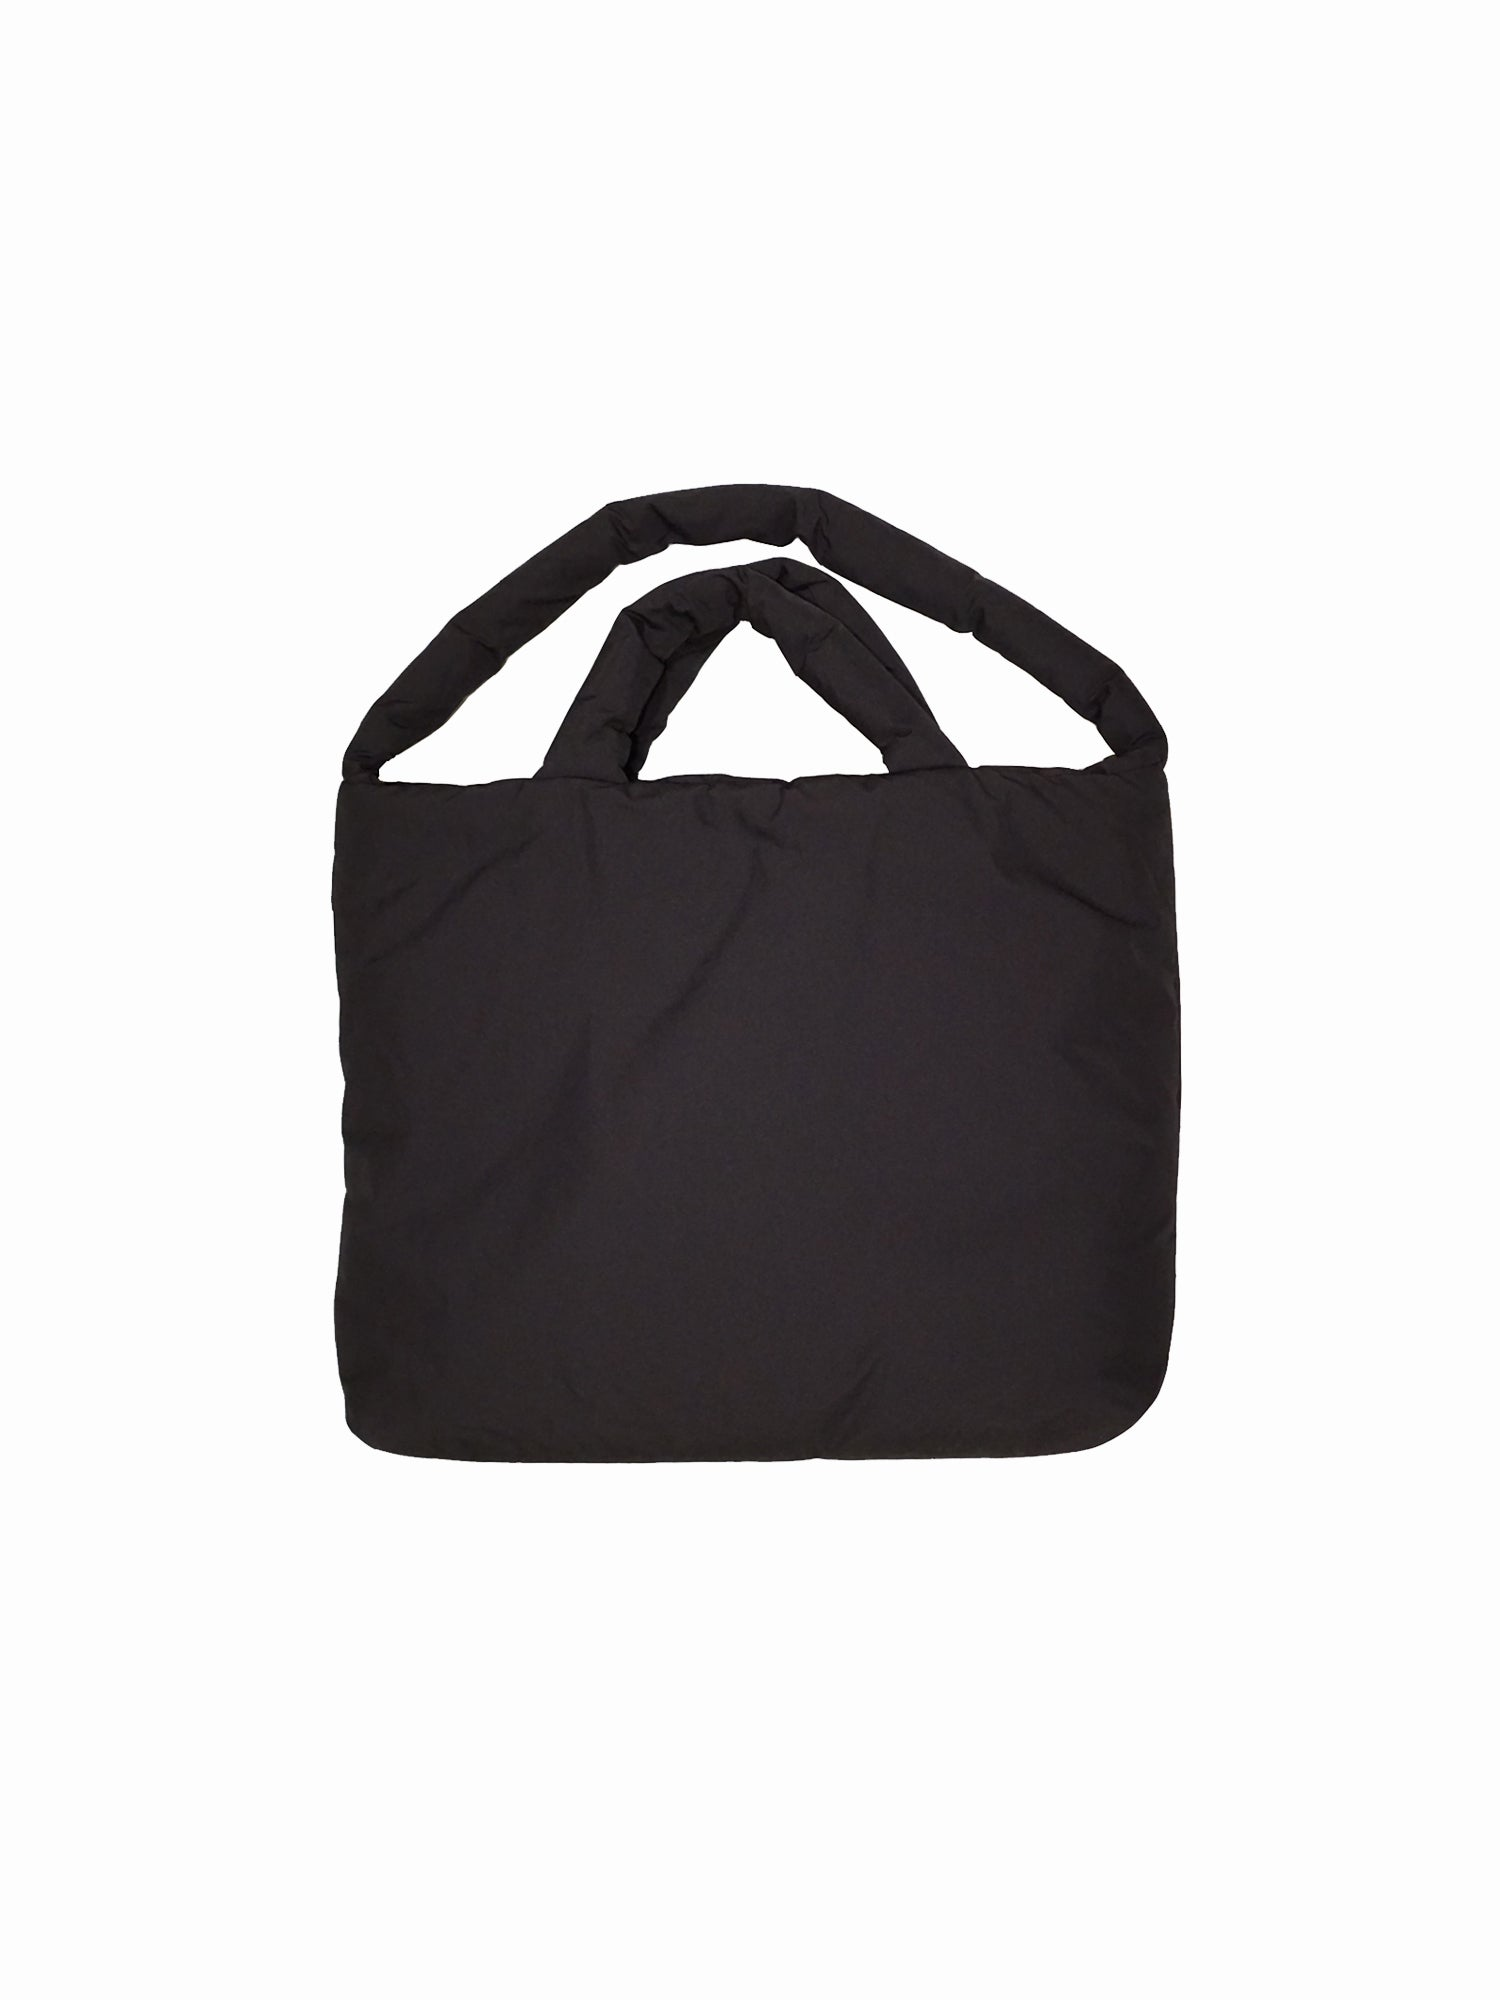 KASSL Editions Bag Large Tec Canvas Black